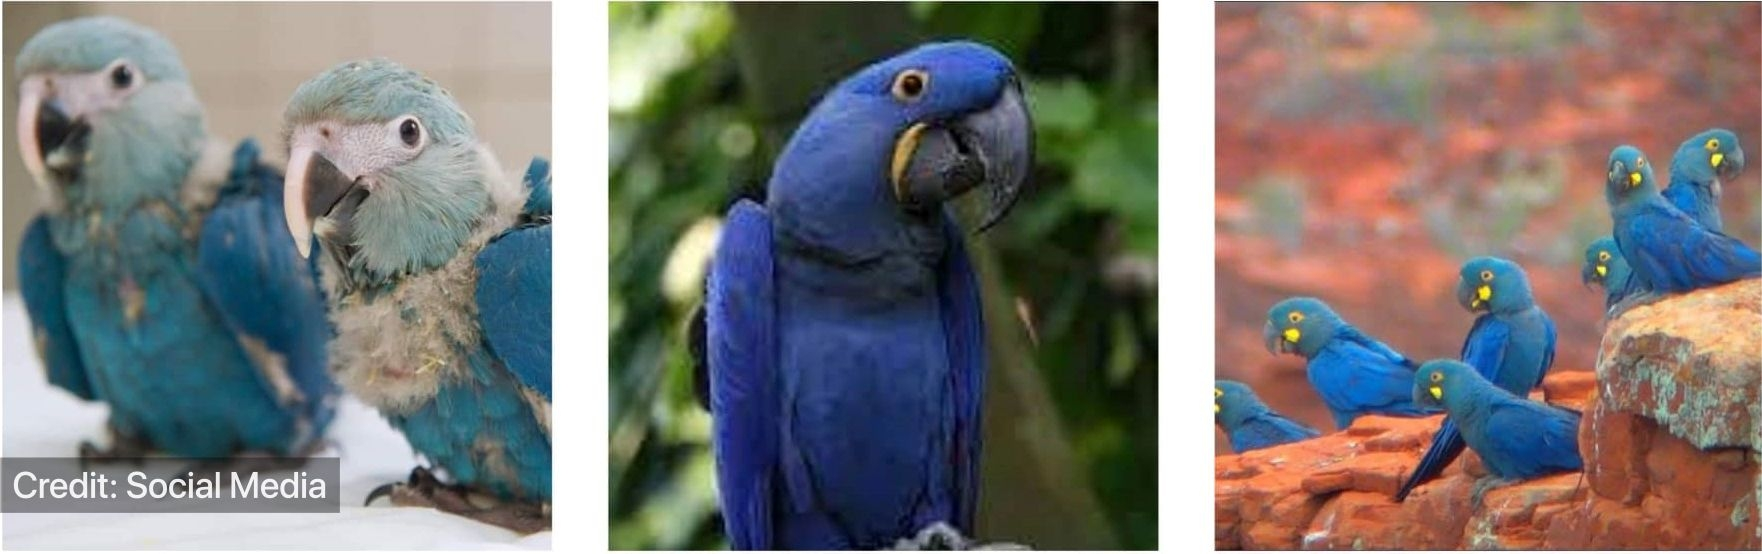 Glaucous.Hyacinth and Lear's macaw